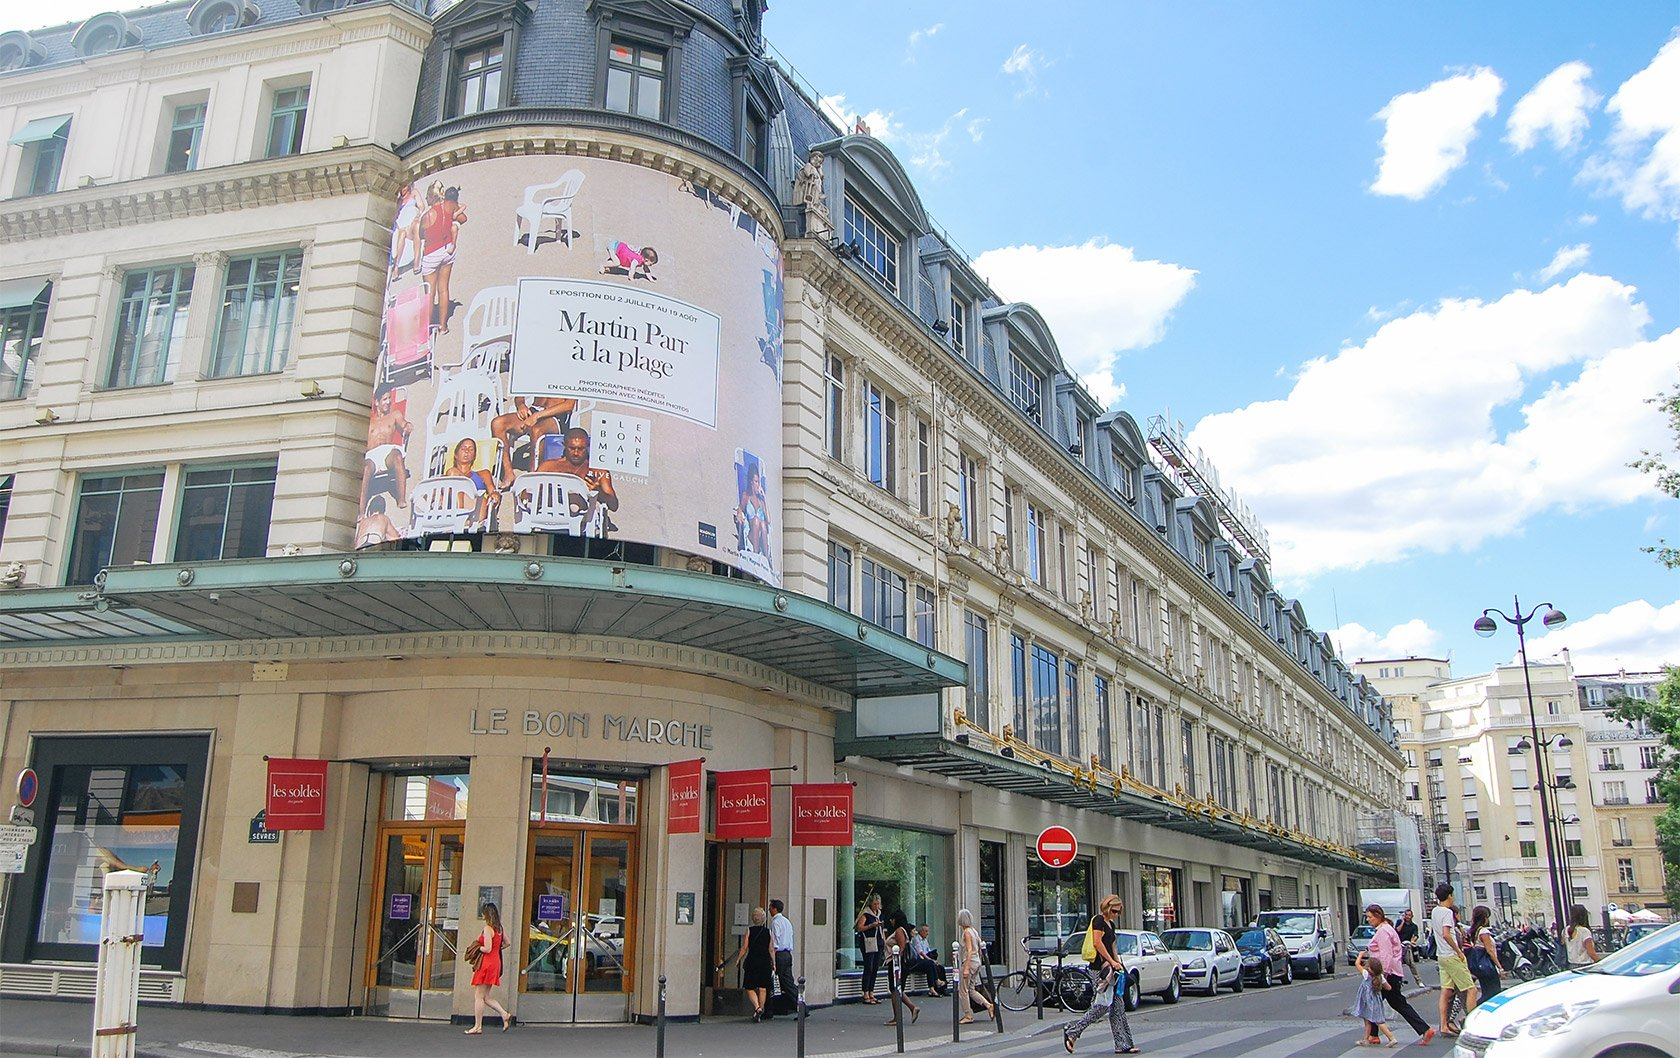 HW-bon-marche-department-store-outside-paris